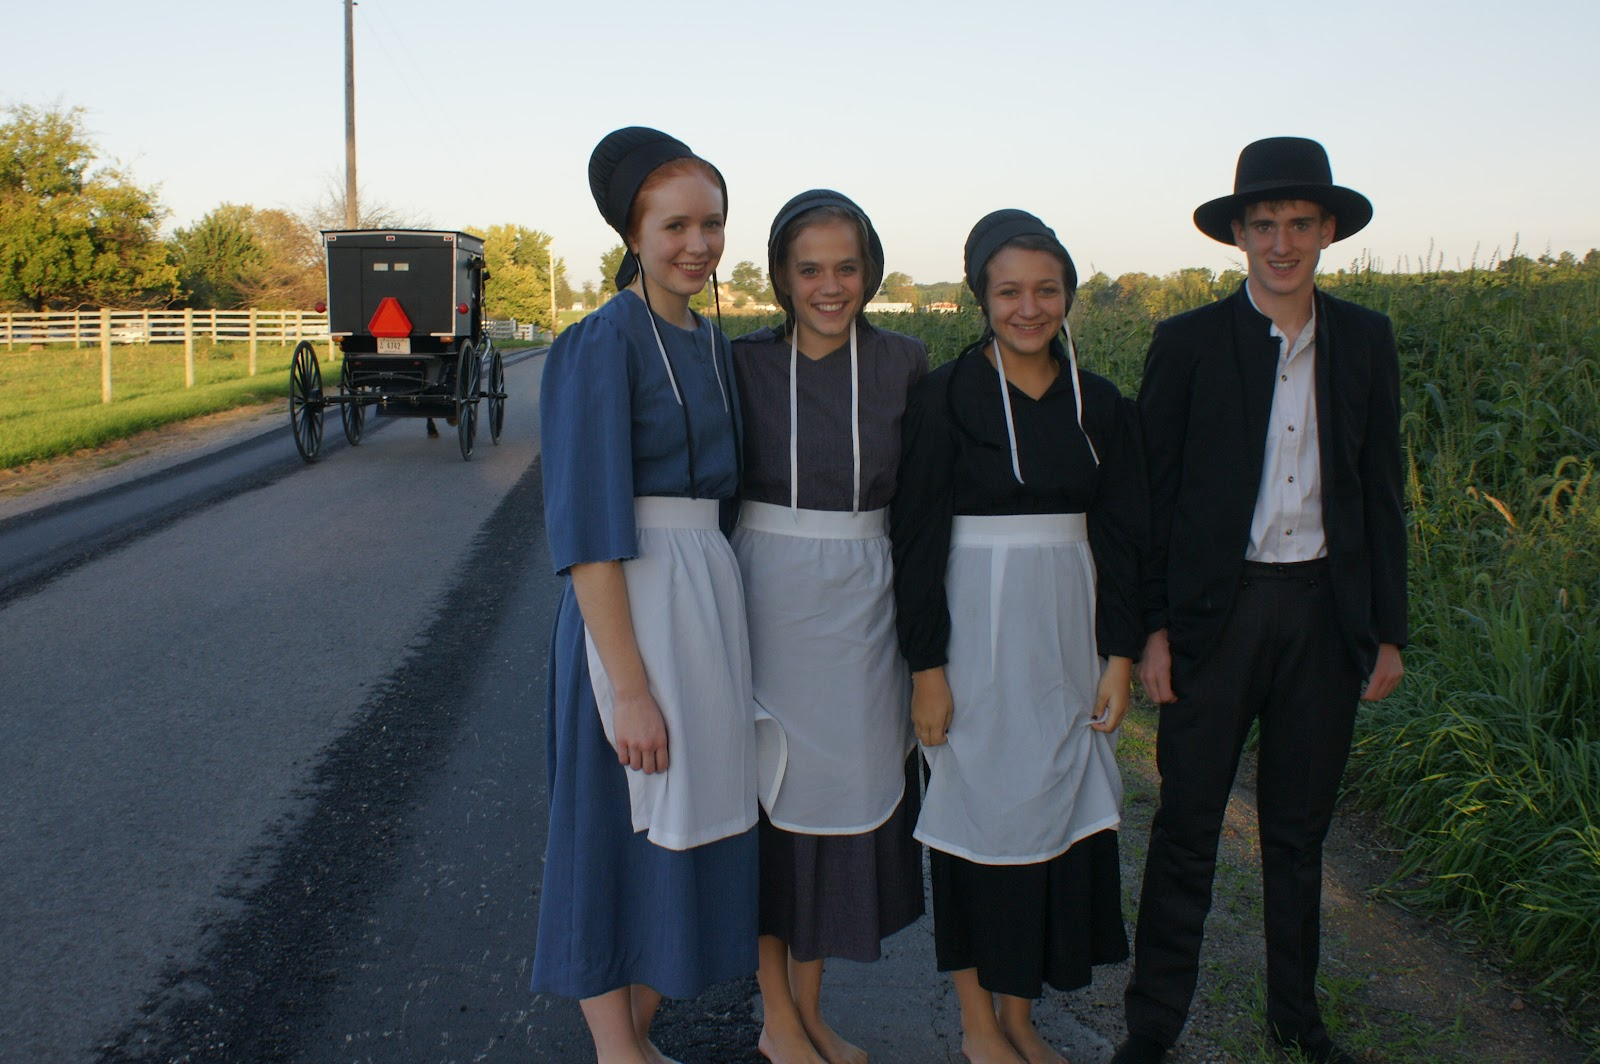 Facts About the Amish You Need to Know | KiwiReport